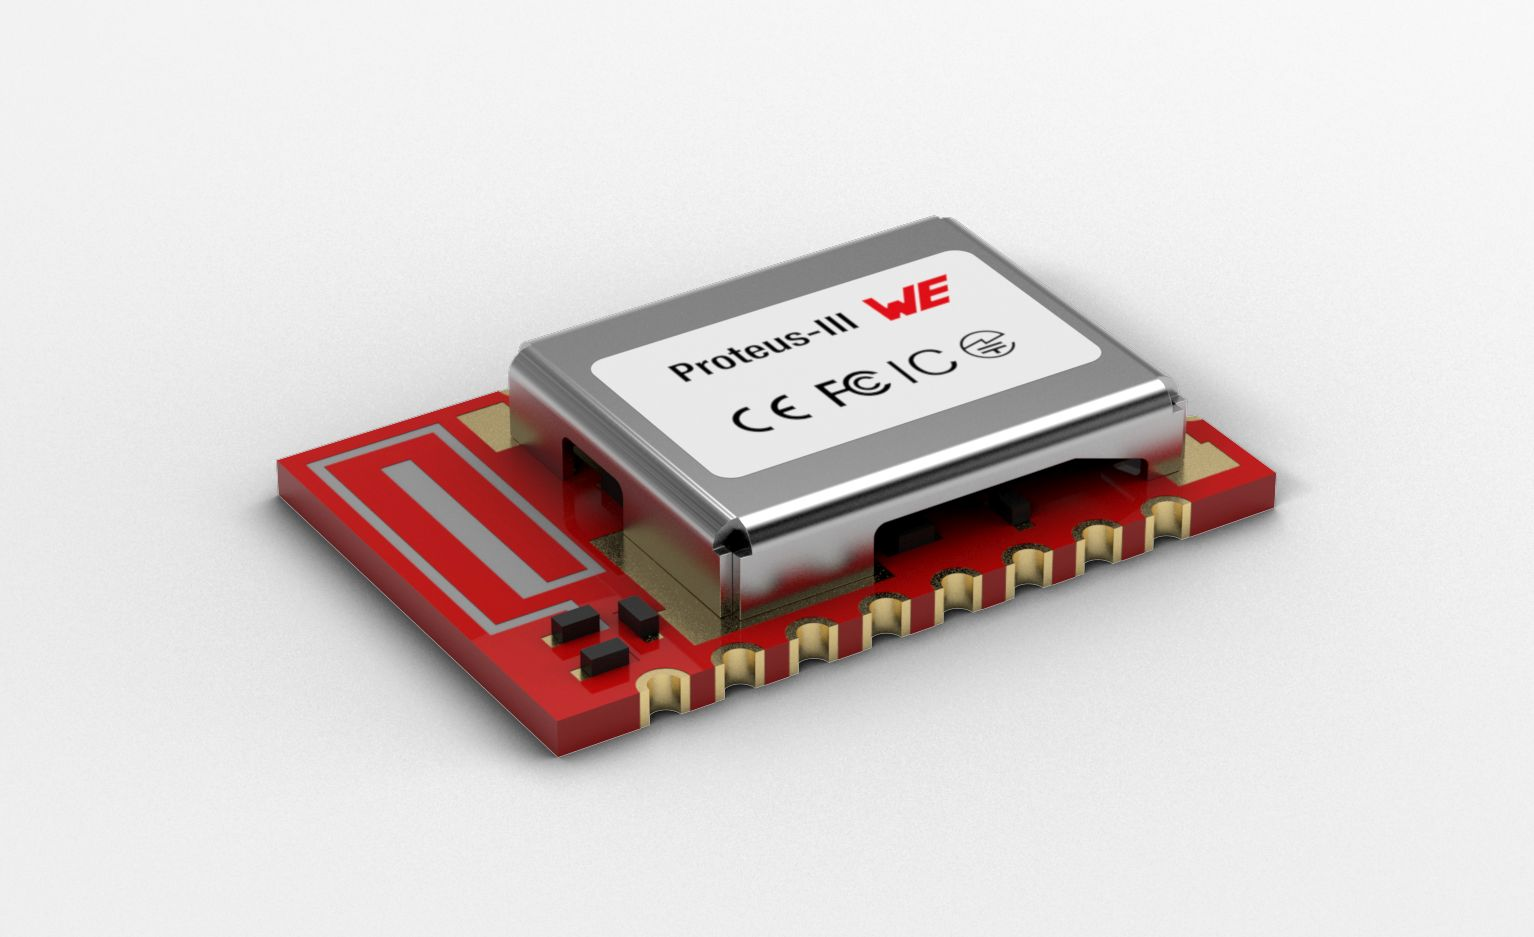 BLE modules include antenna, encryption technology, six configurable I/O pins